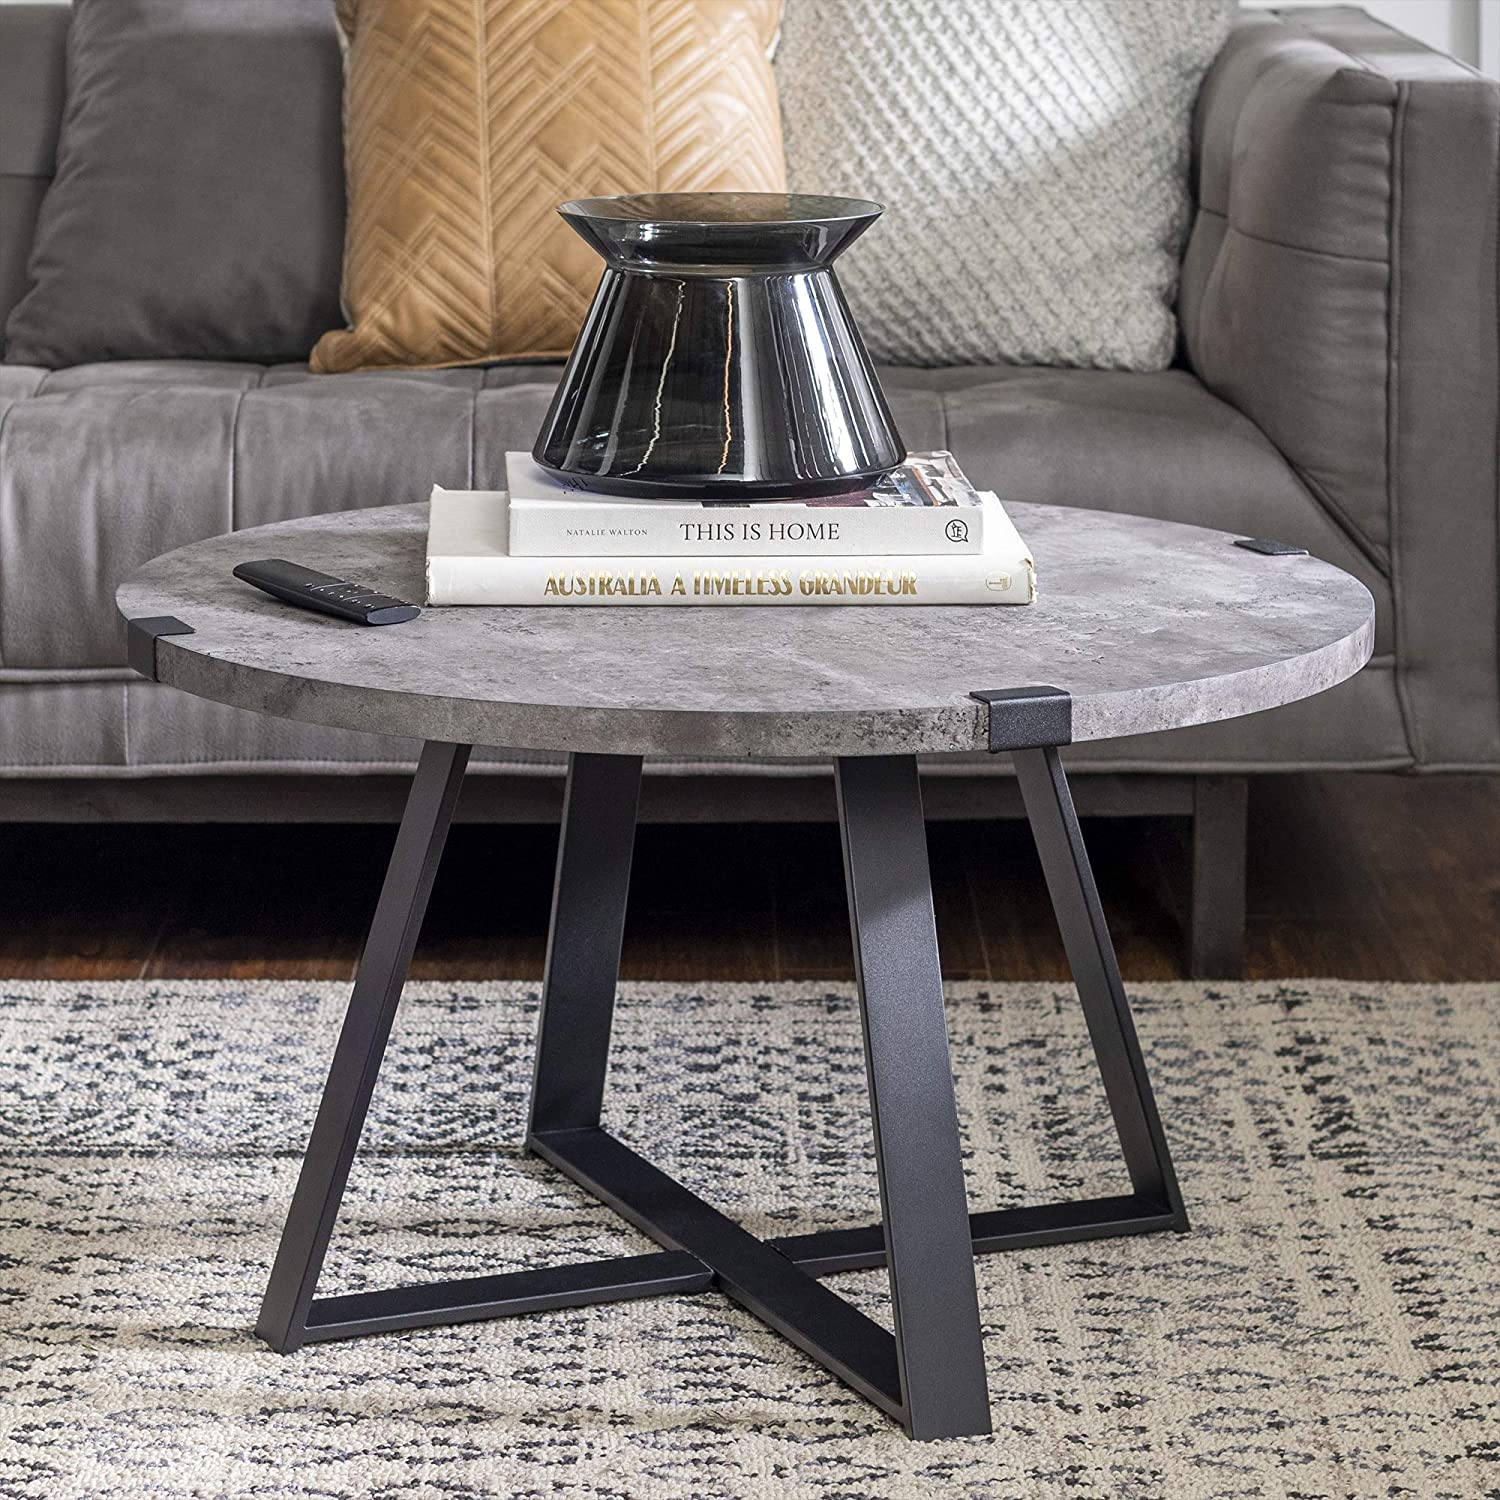 Best Coffee Tables for Small Living Room